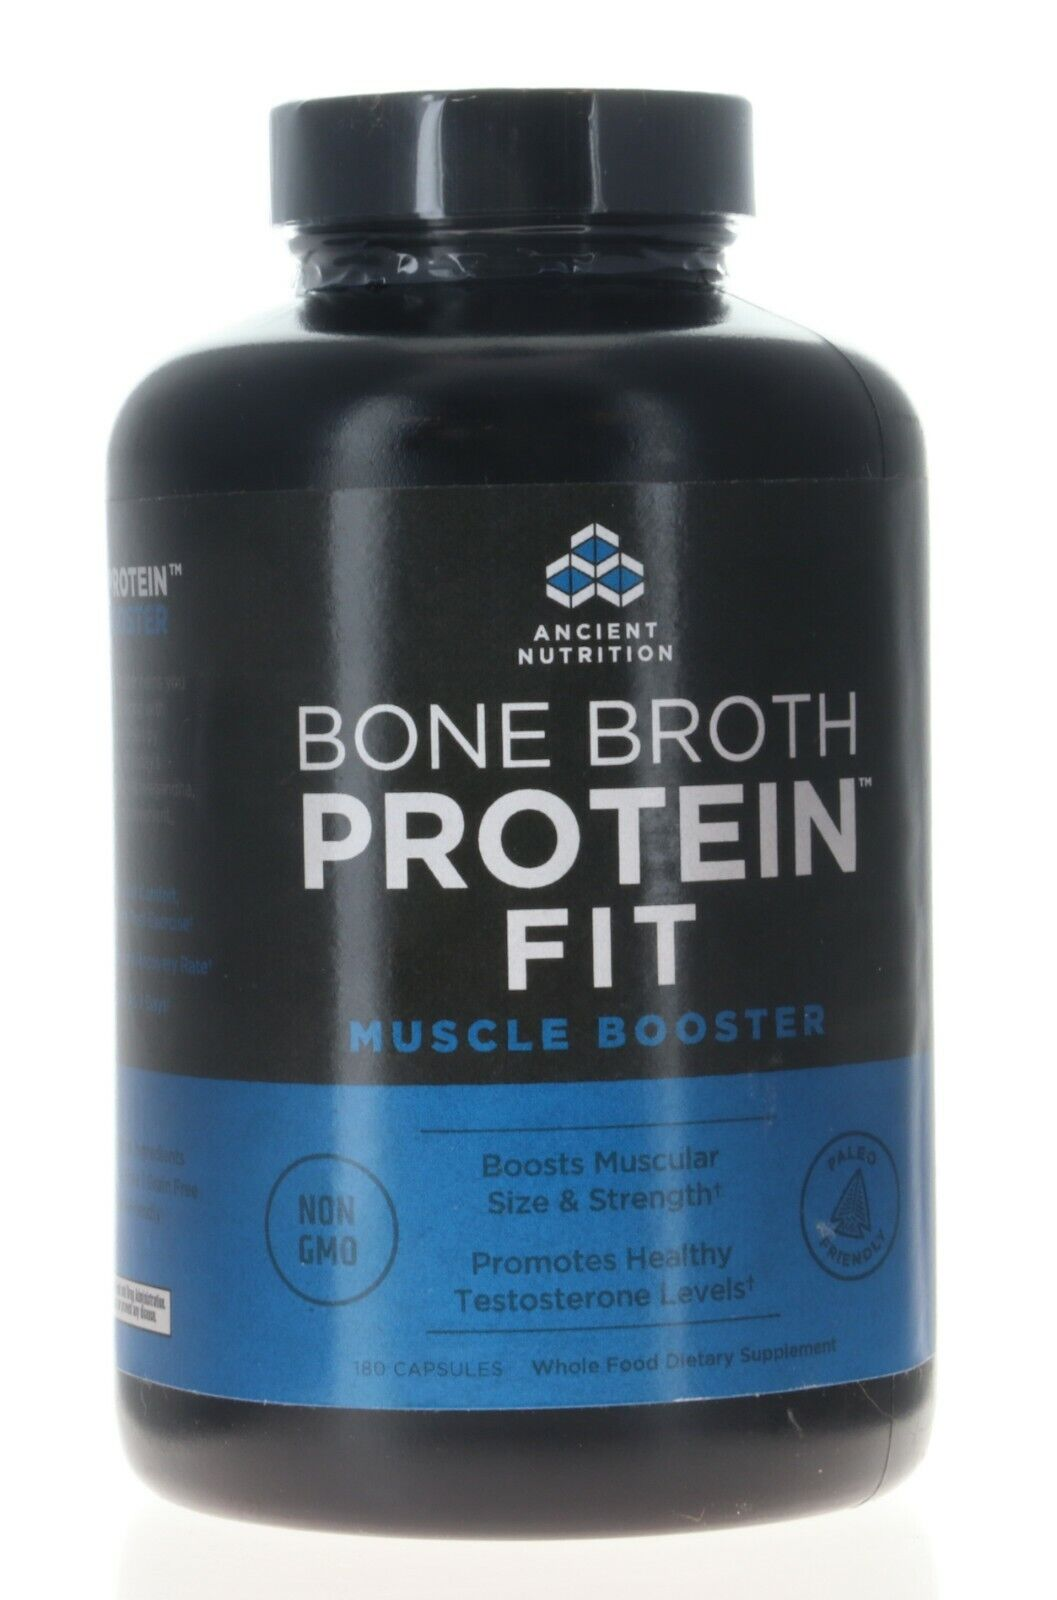 Ancient Nutrition Bone Broth Protein Fit Muscle Booster 180